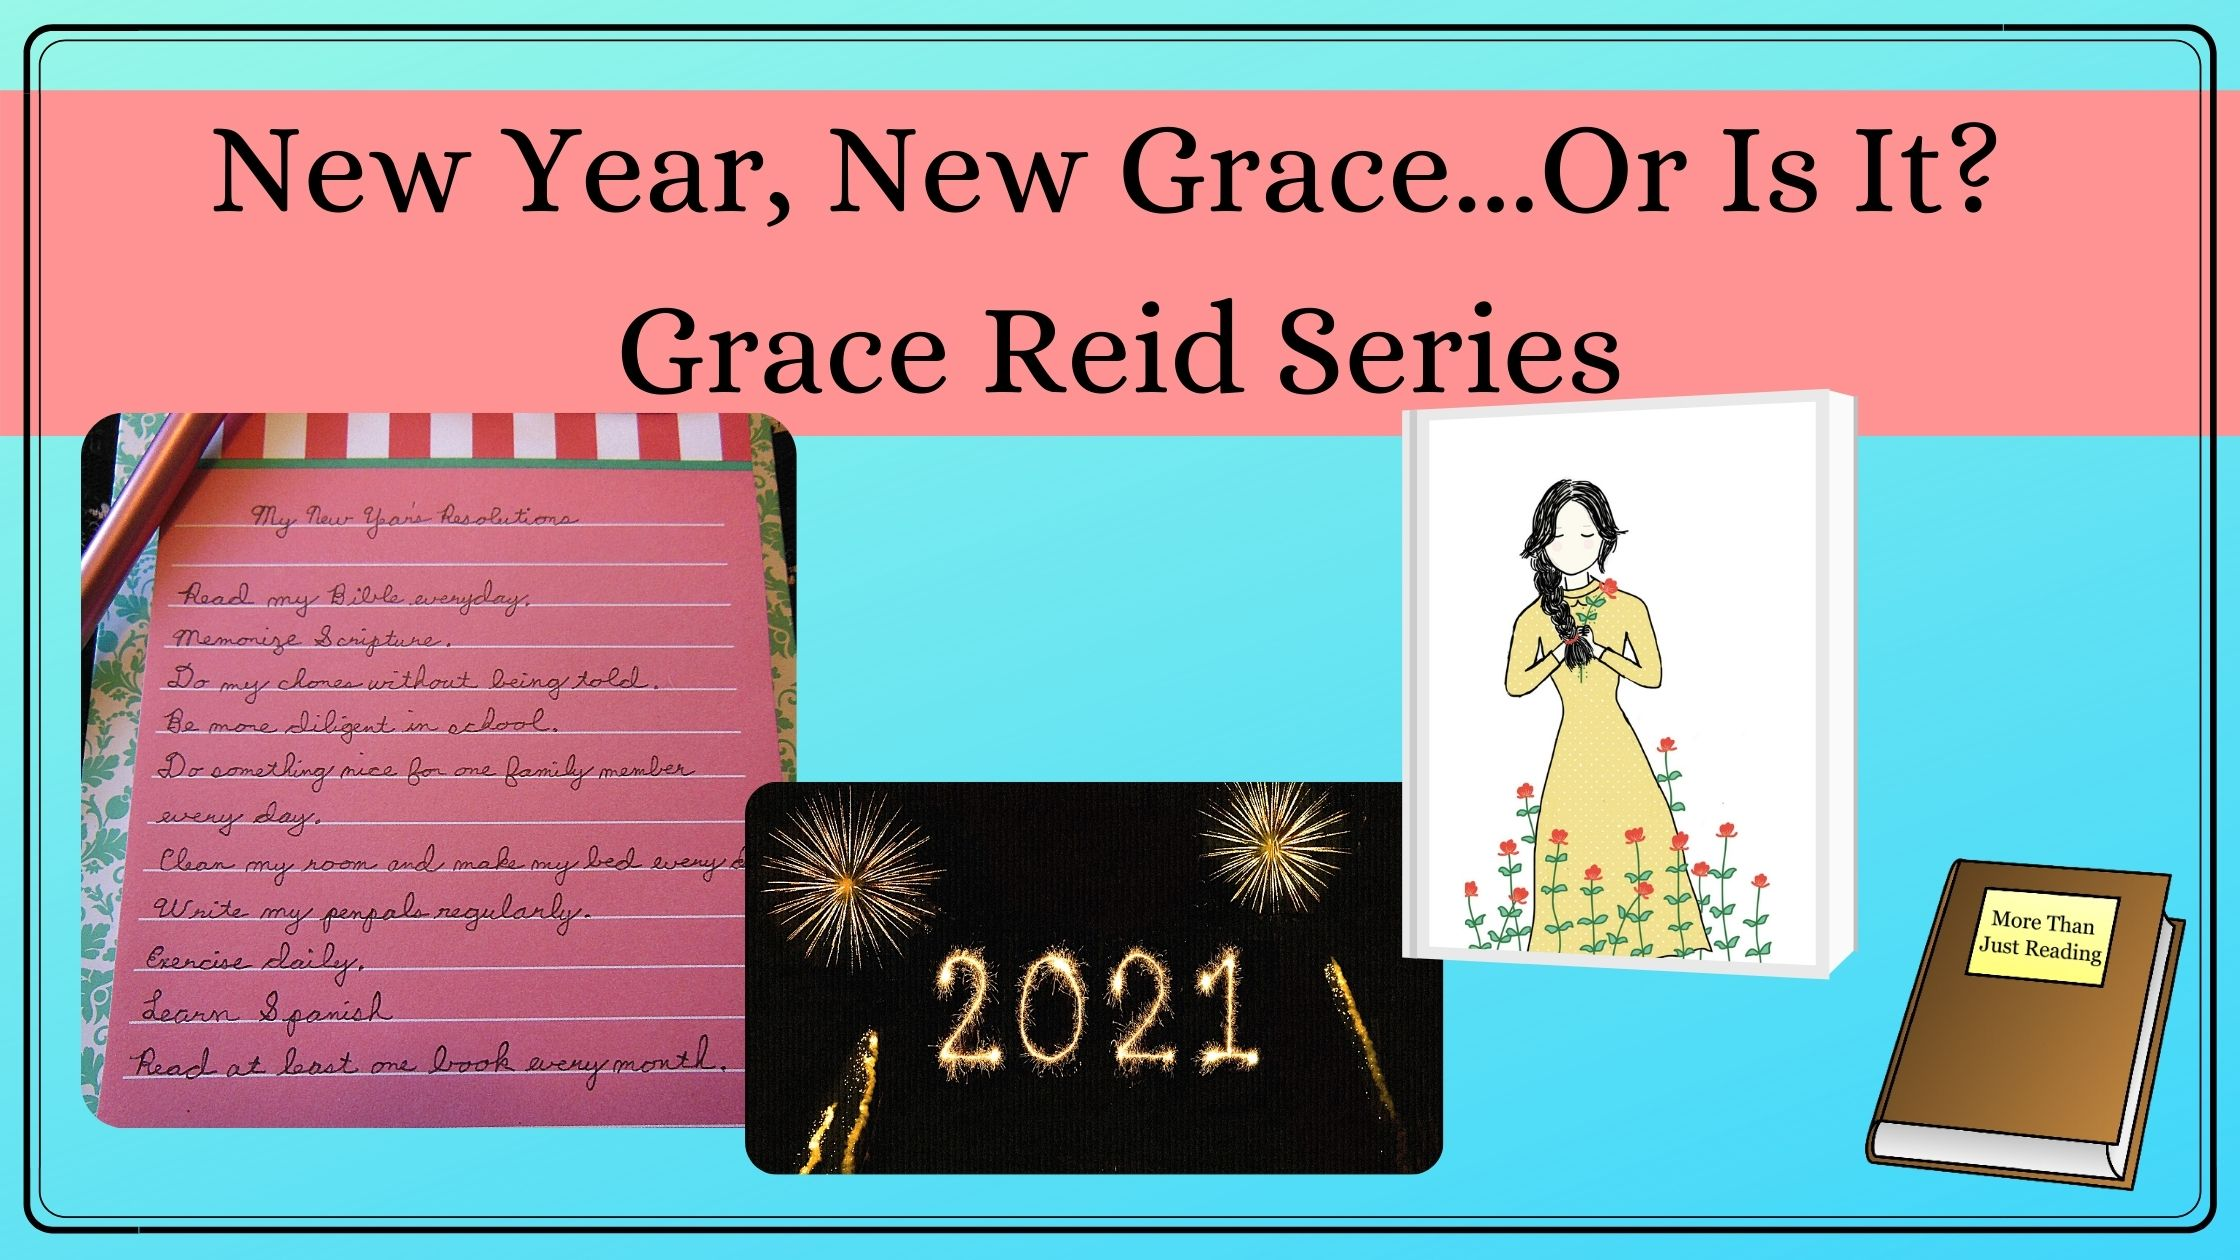 New Year, New Grace...Or Is It?